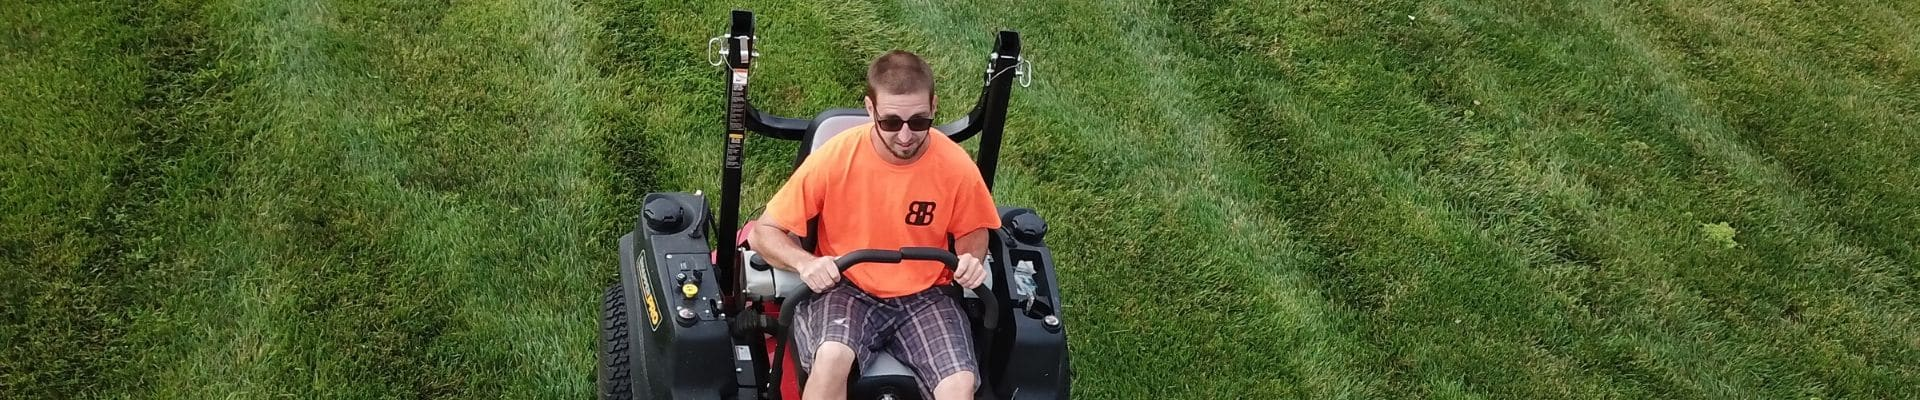 Drone photo of Billy with B N B Lawn Mowing on his zero turn mower mowing a lawn.